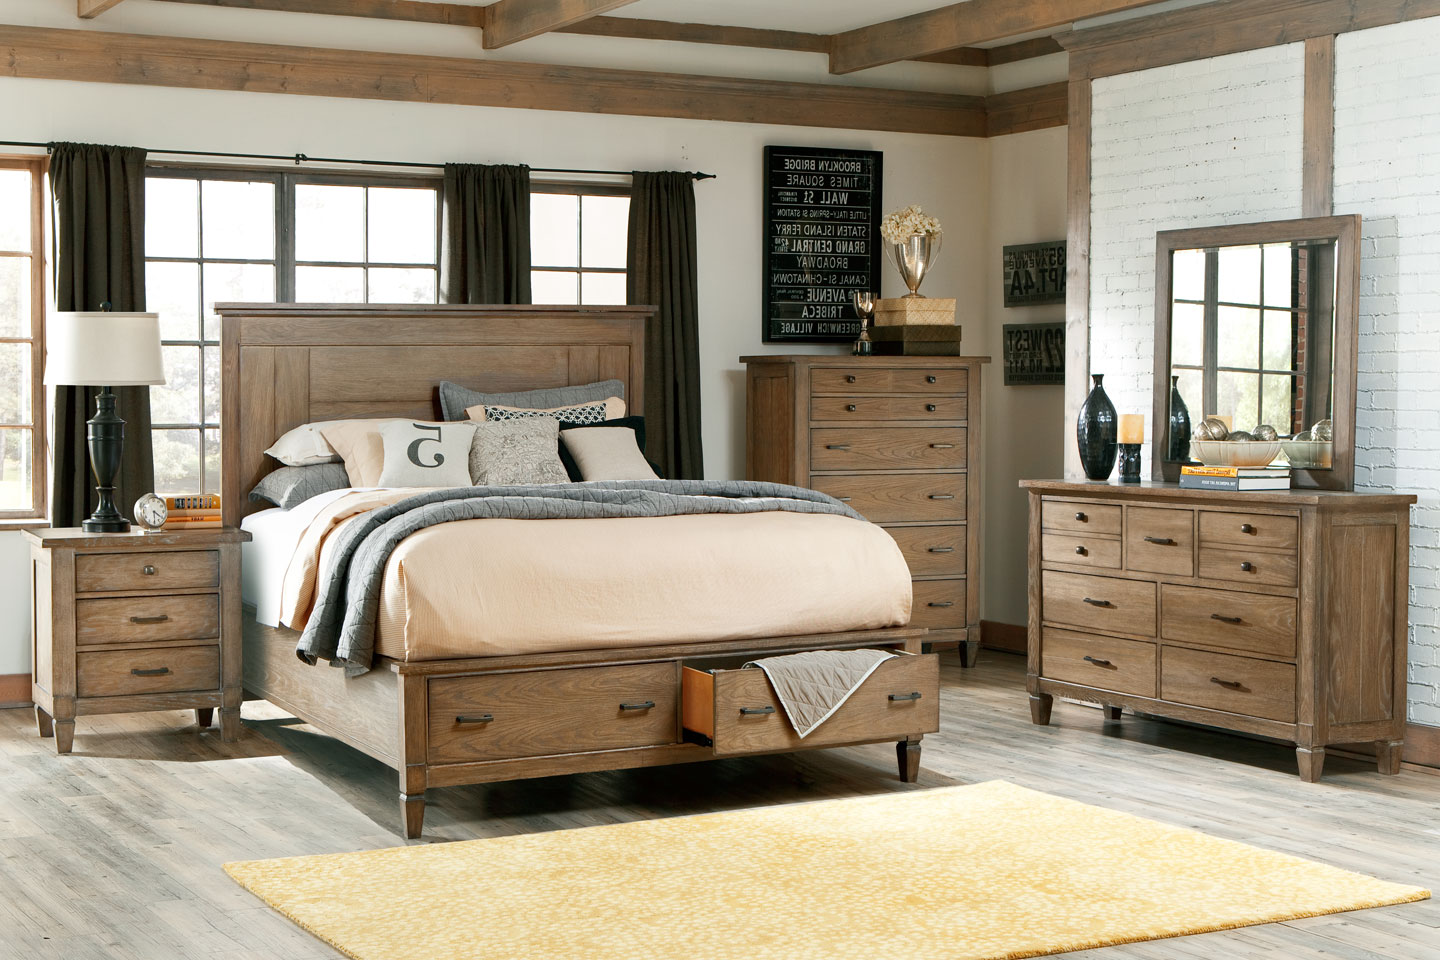 Gavin wood bedroom furniture collection wood bedroom for Bedroom furnishings